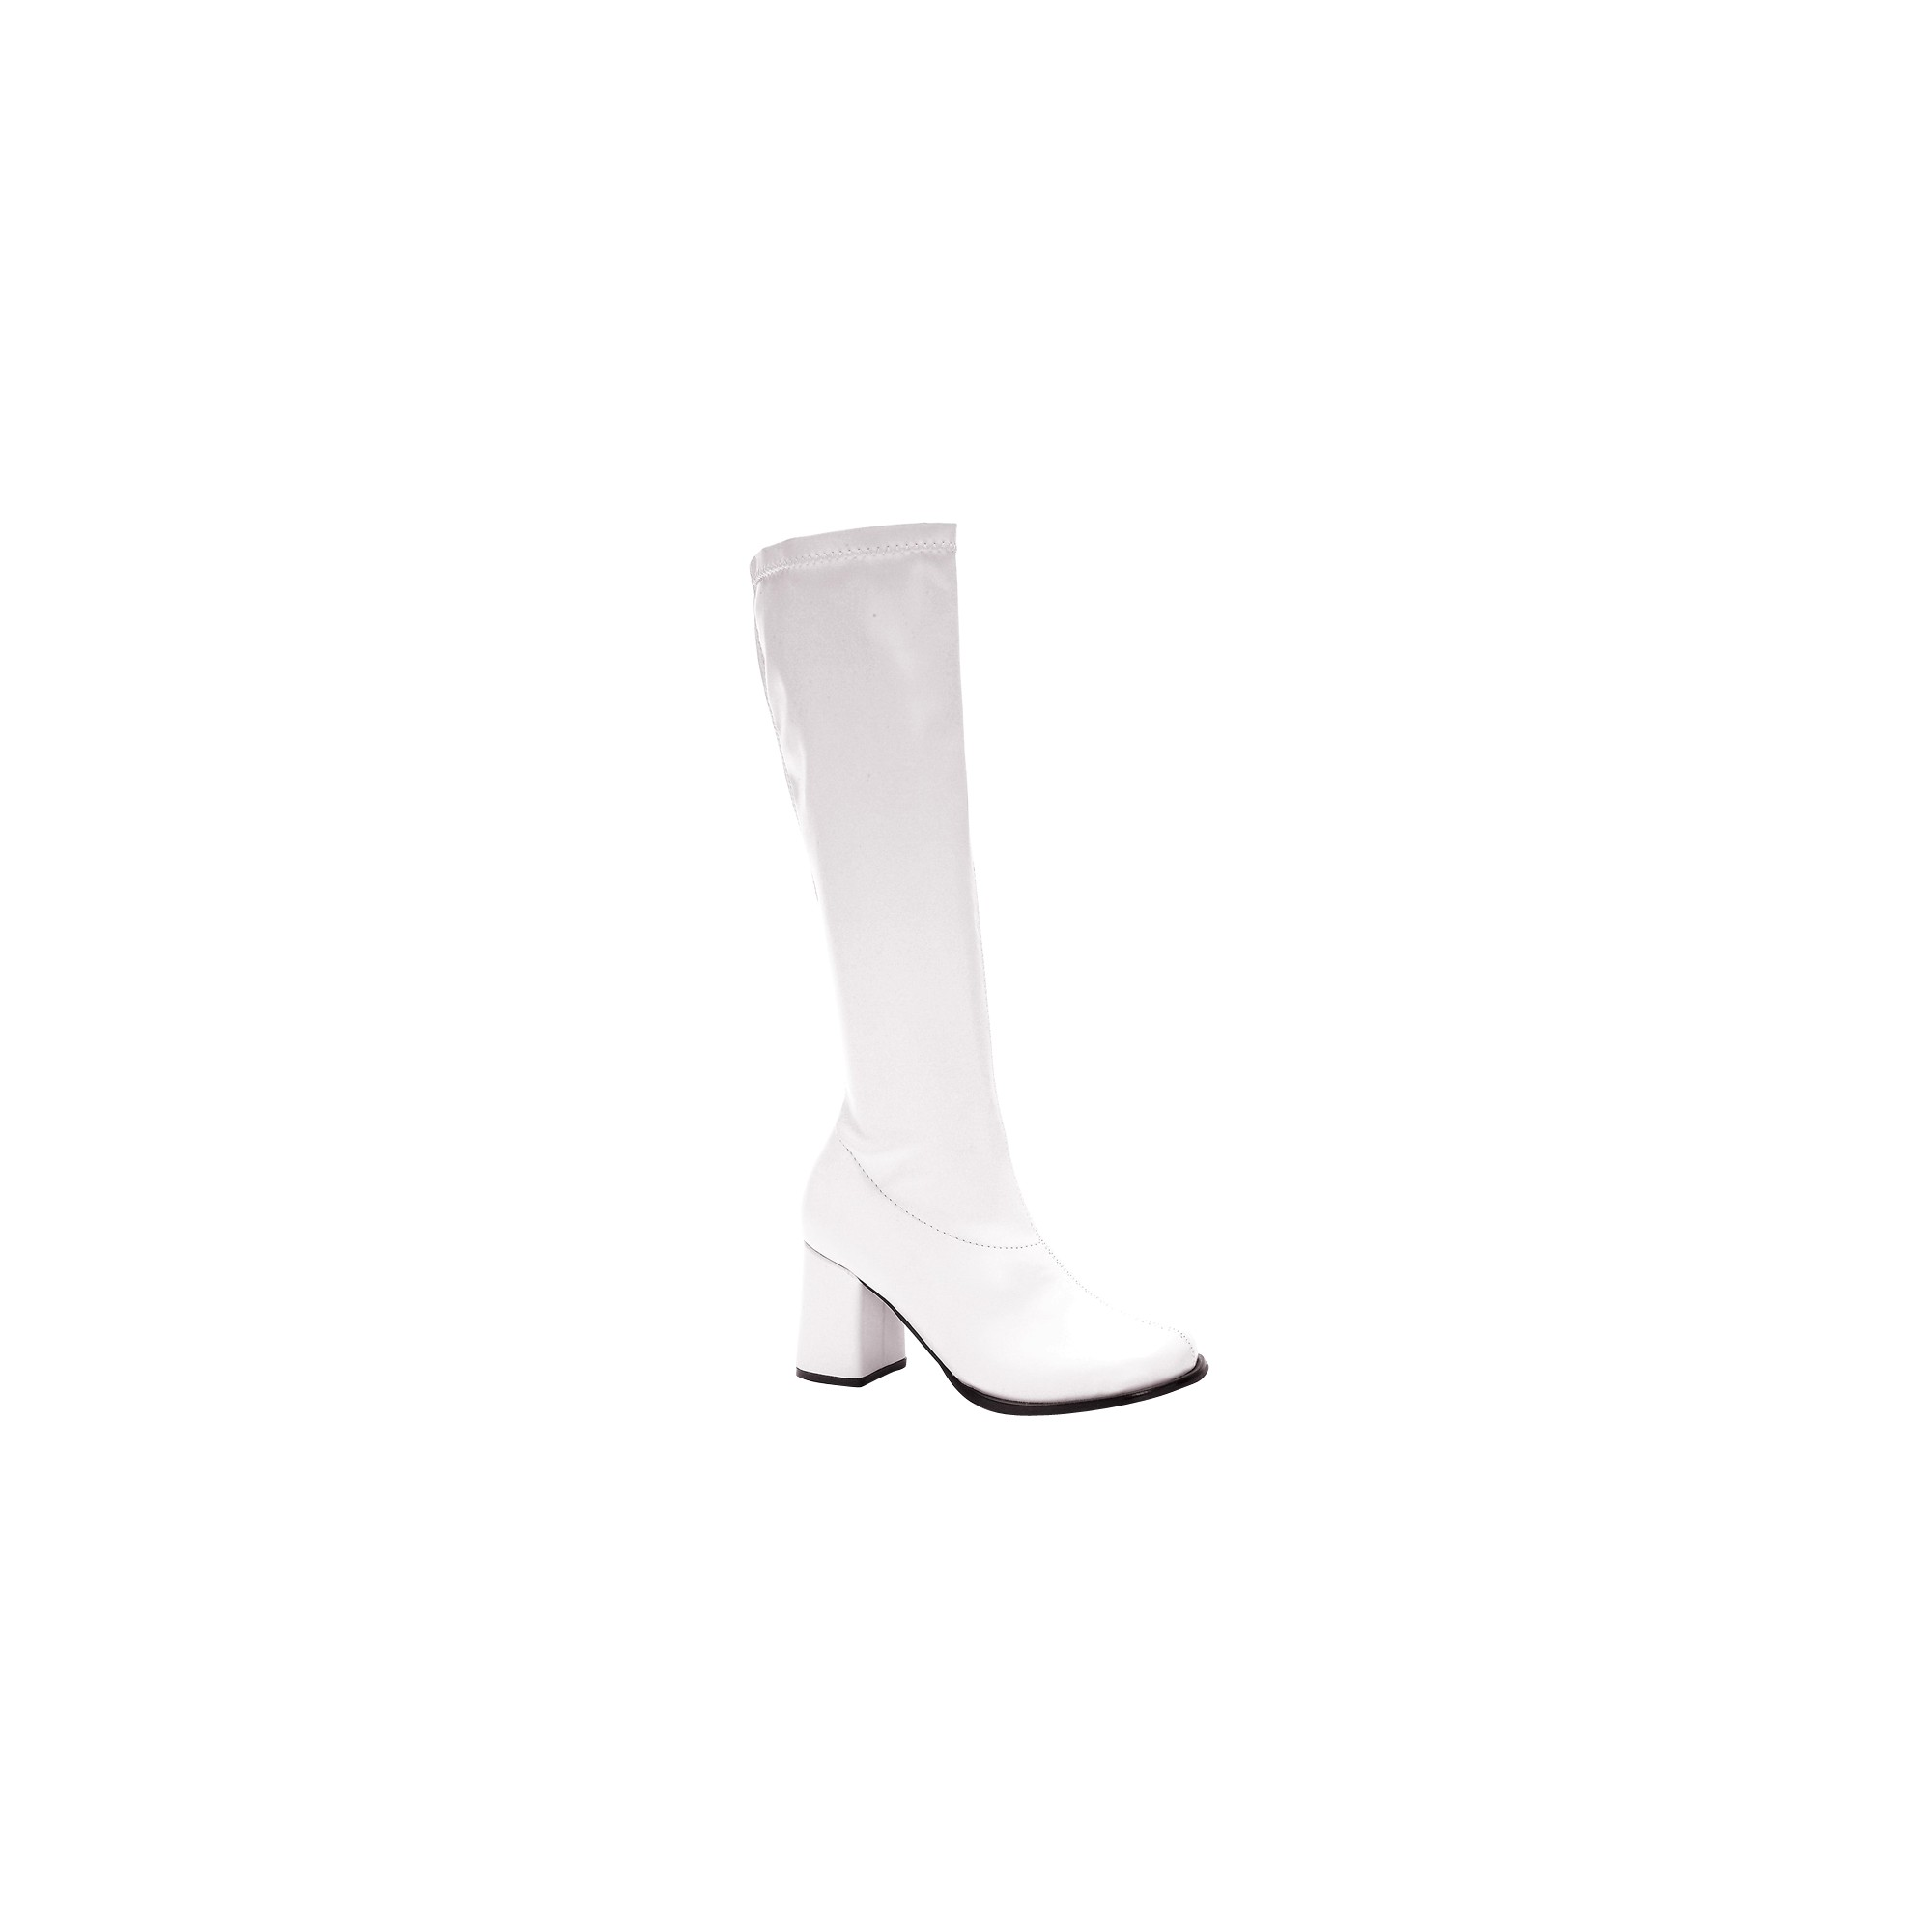 Halloween Adult Gogo Boots White Costume Size 9, Women's